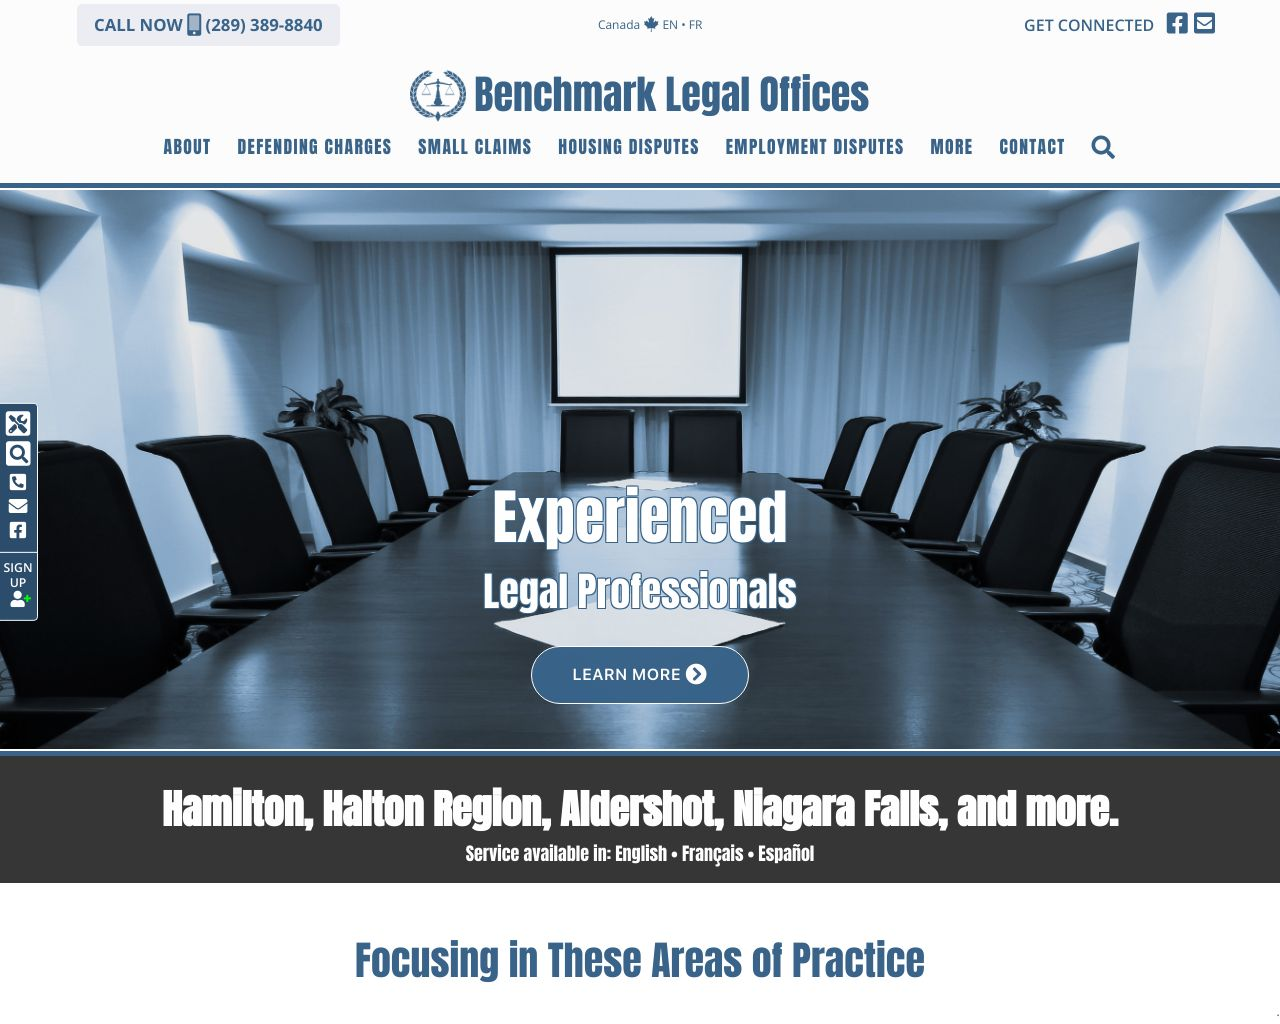 Website: Benchmark Legal Offices